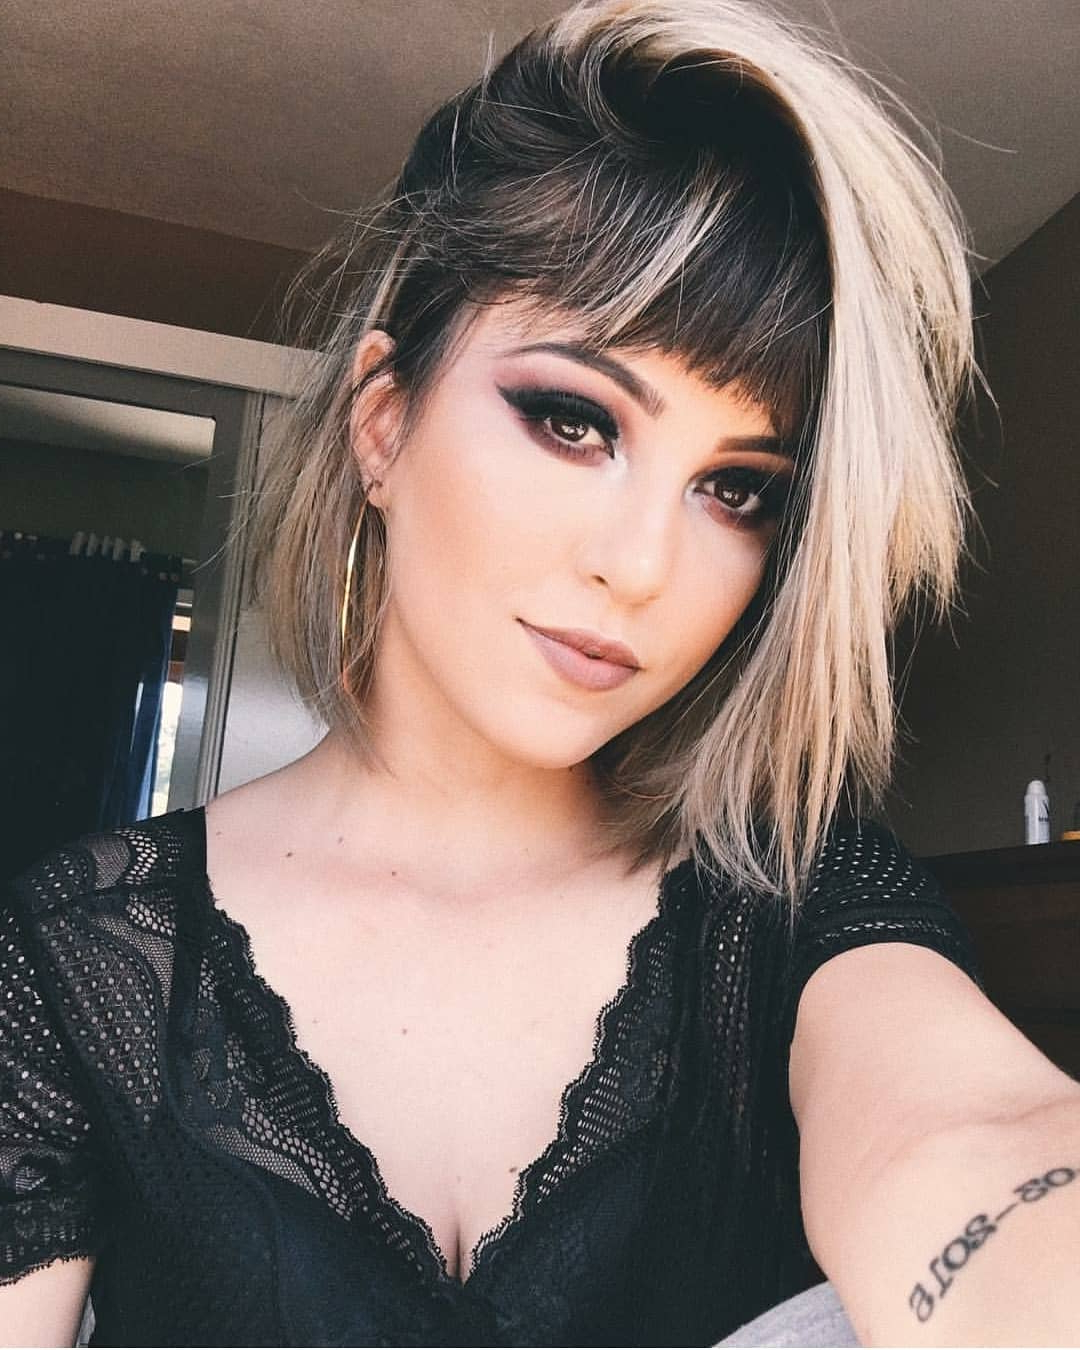 10 Cute Short Hairstyles And Haircuts For Young Girls, Short Hair 2019 Throughout Young Girl Short Hairstyles (View 2 of 25)